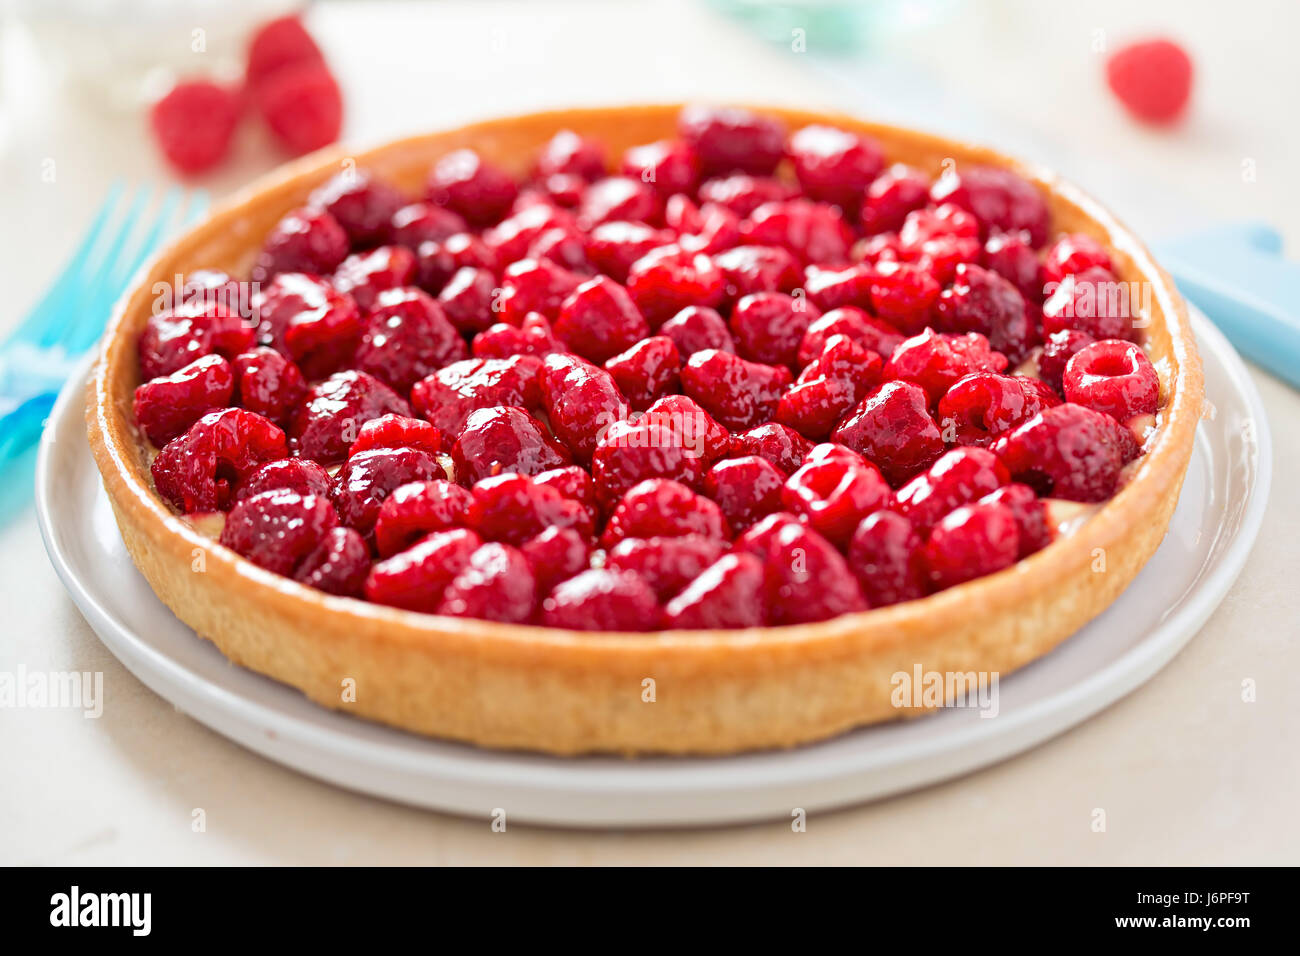 Raspberry tart with lemon filling and shortcrust pastry - Stock Image